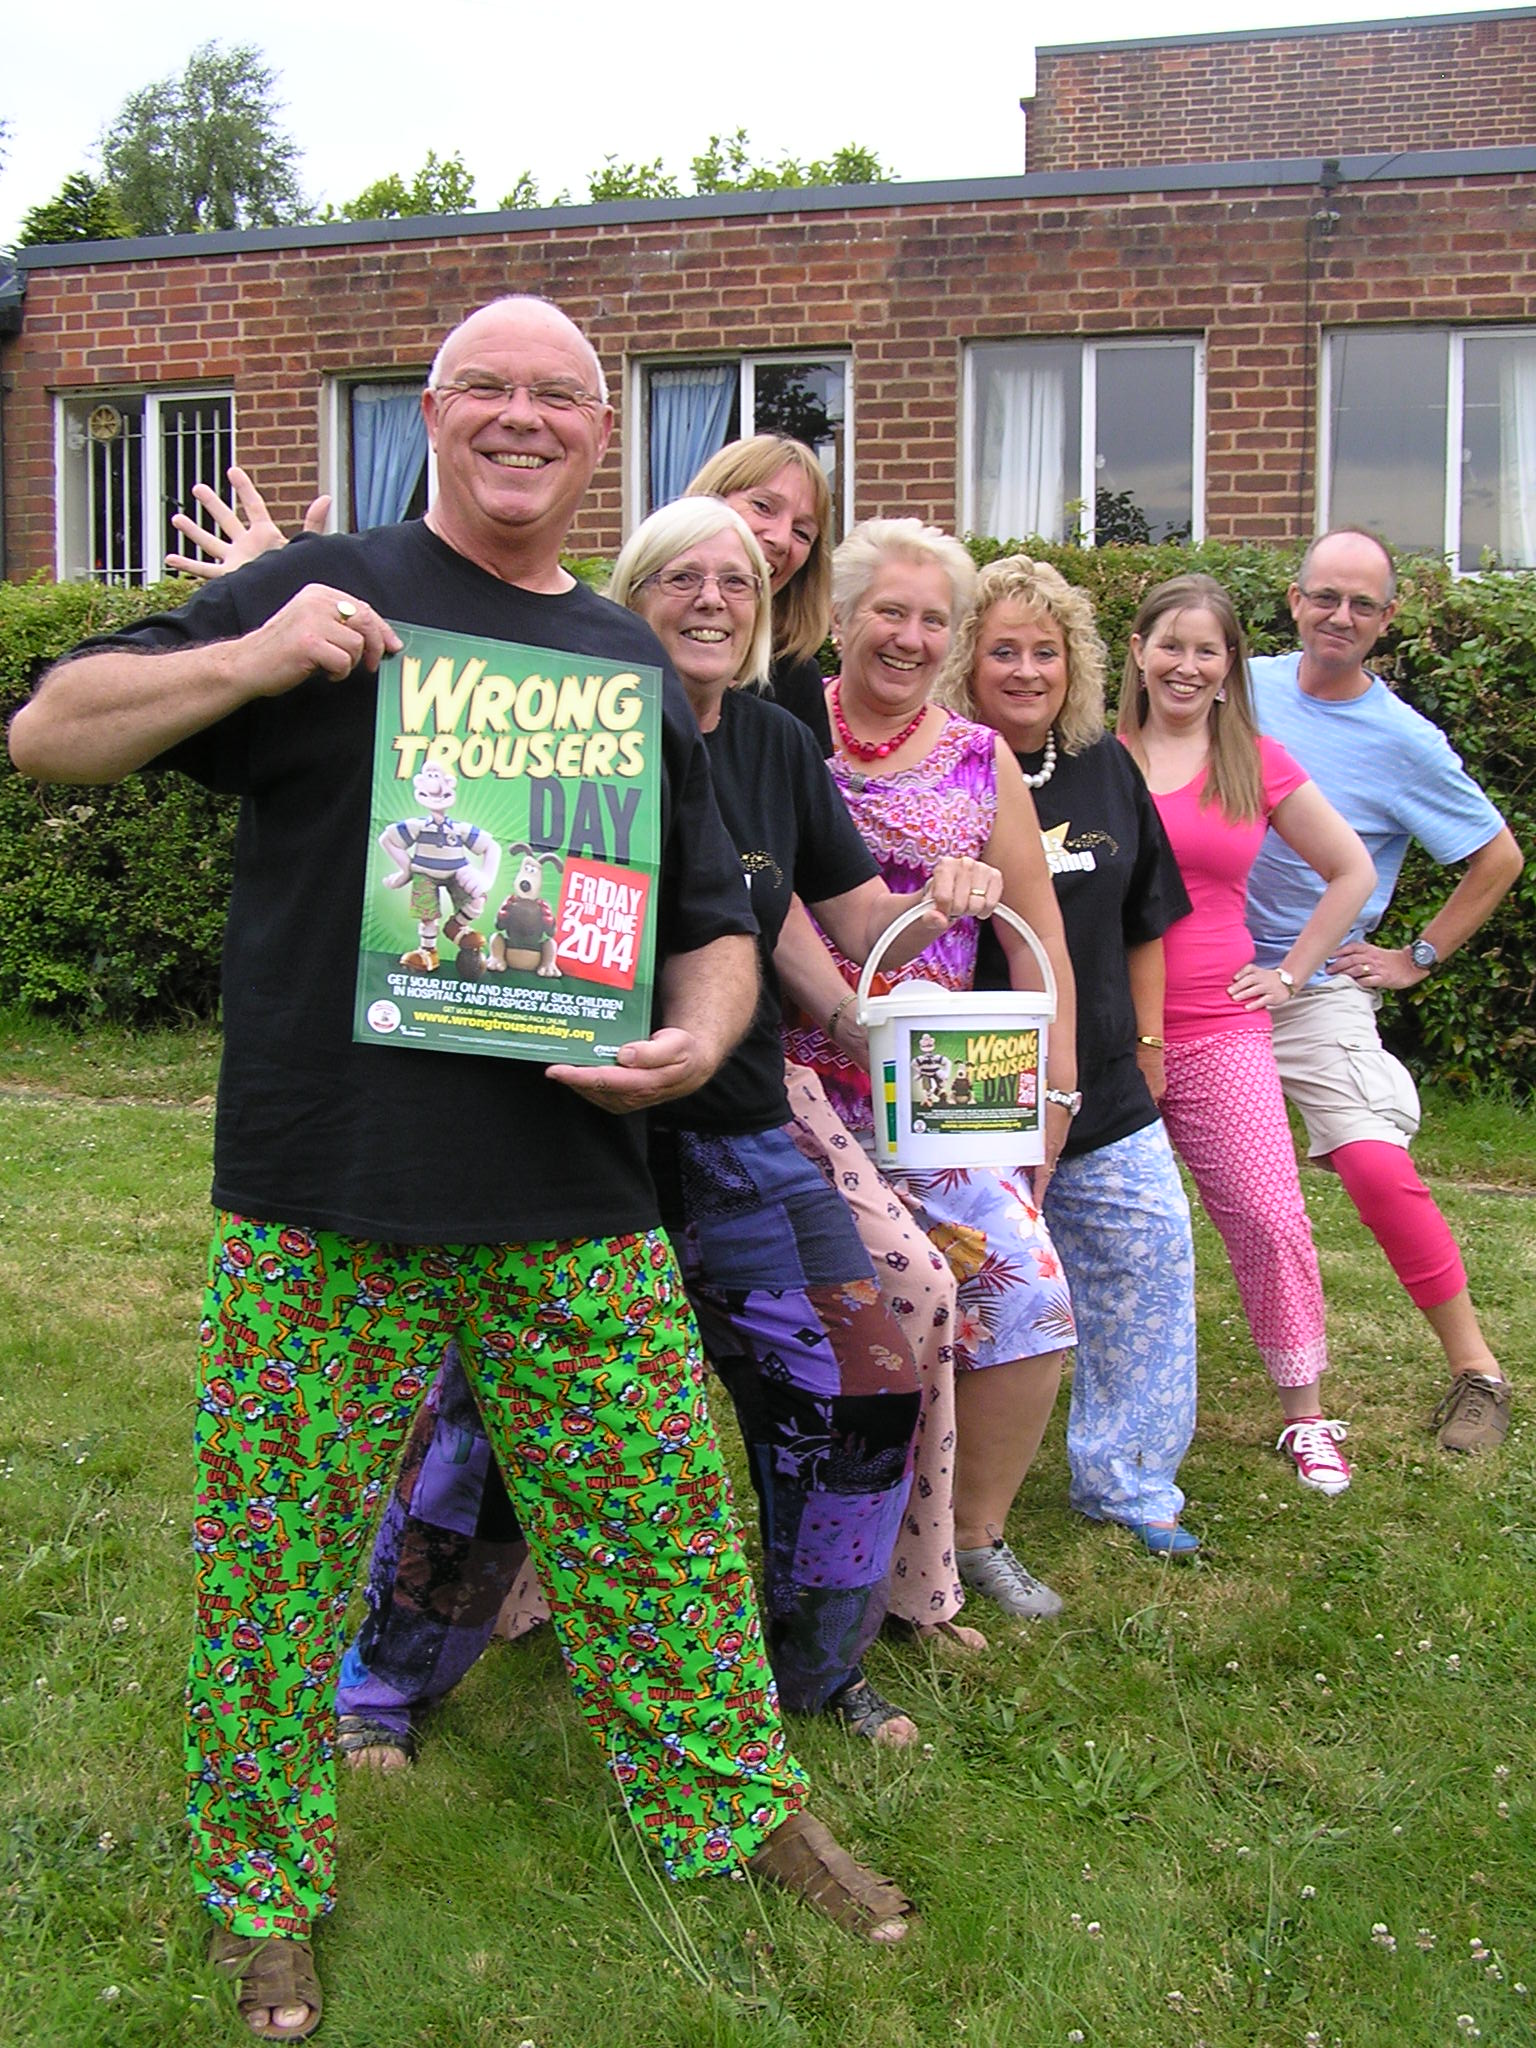 Choir members wearing the wrong trousers from l-r Richard Conway, Margaret Horn, Paula Sutton, Helen Needham, Nicola Mallaband, Louise Pierce, Tim Mallaband.